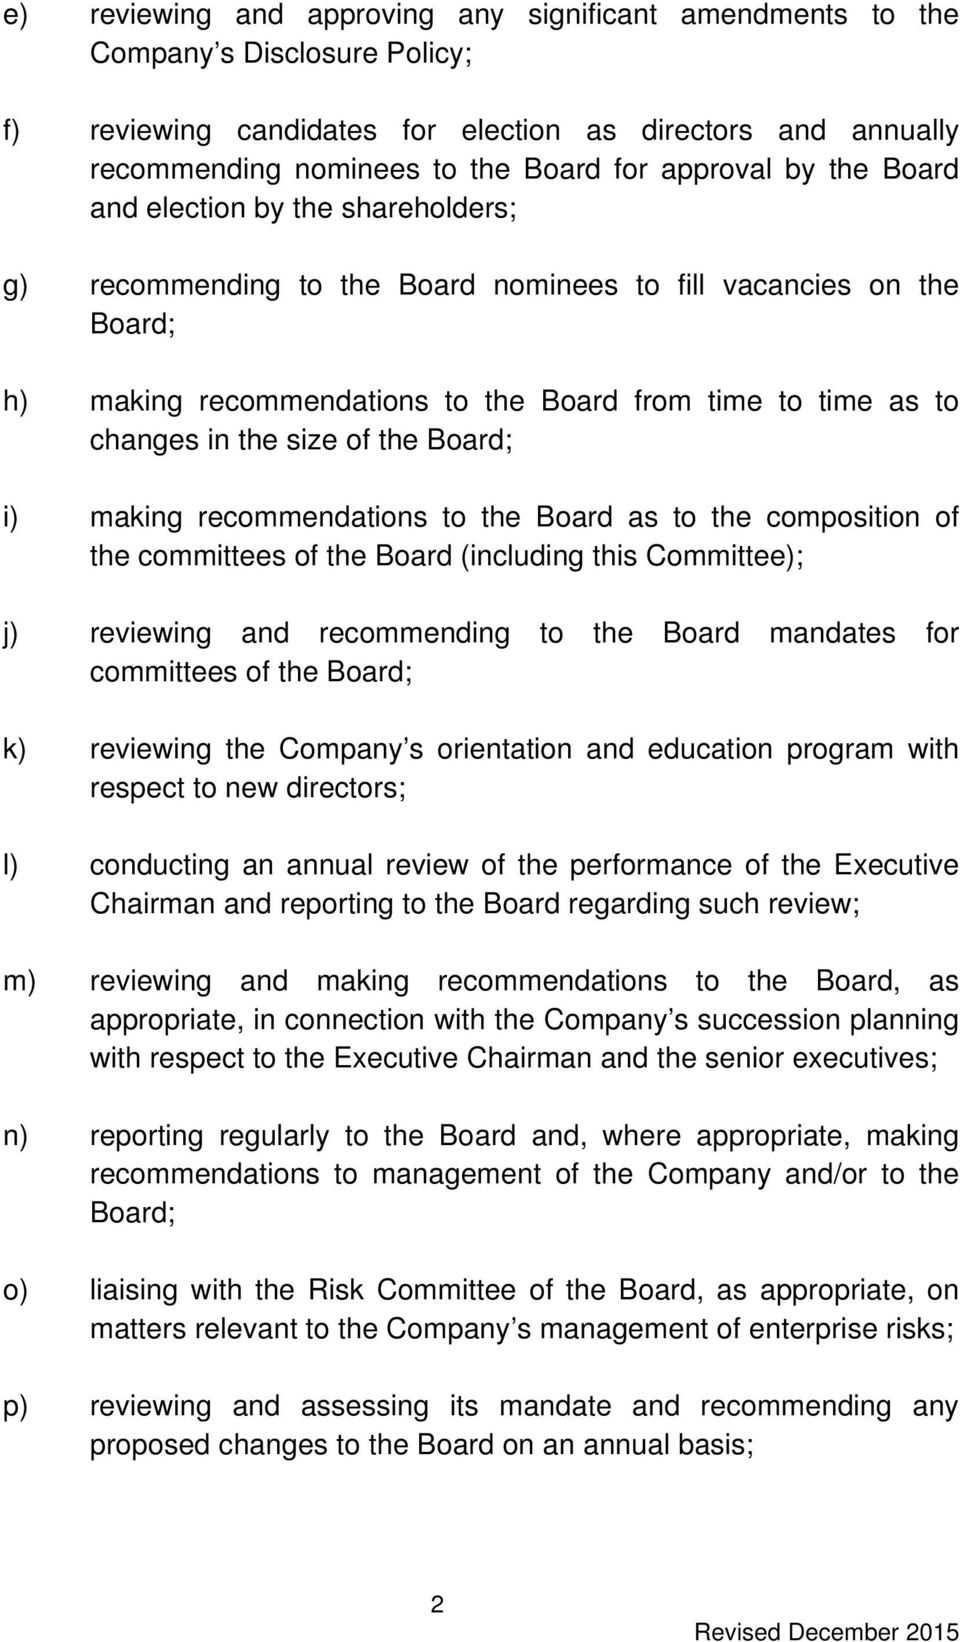 the size of the Board; i) making recommendations to the Board as to the composition of the committees of the Board (including this Committee); j) reviewing and recommending to the Board mandates for